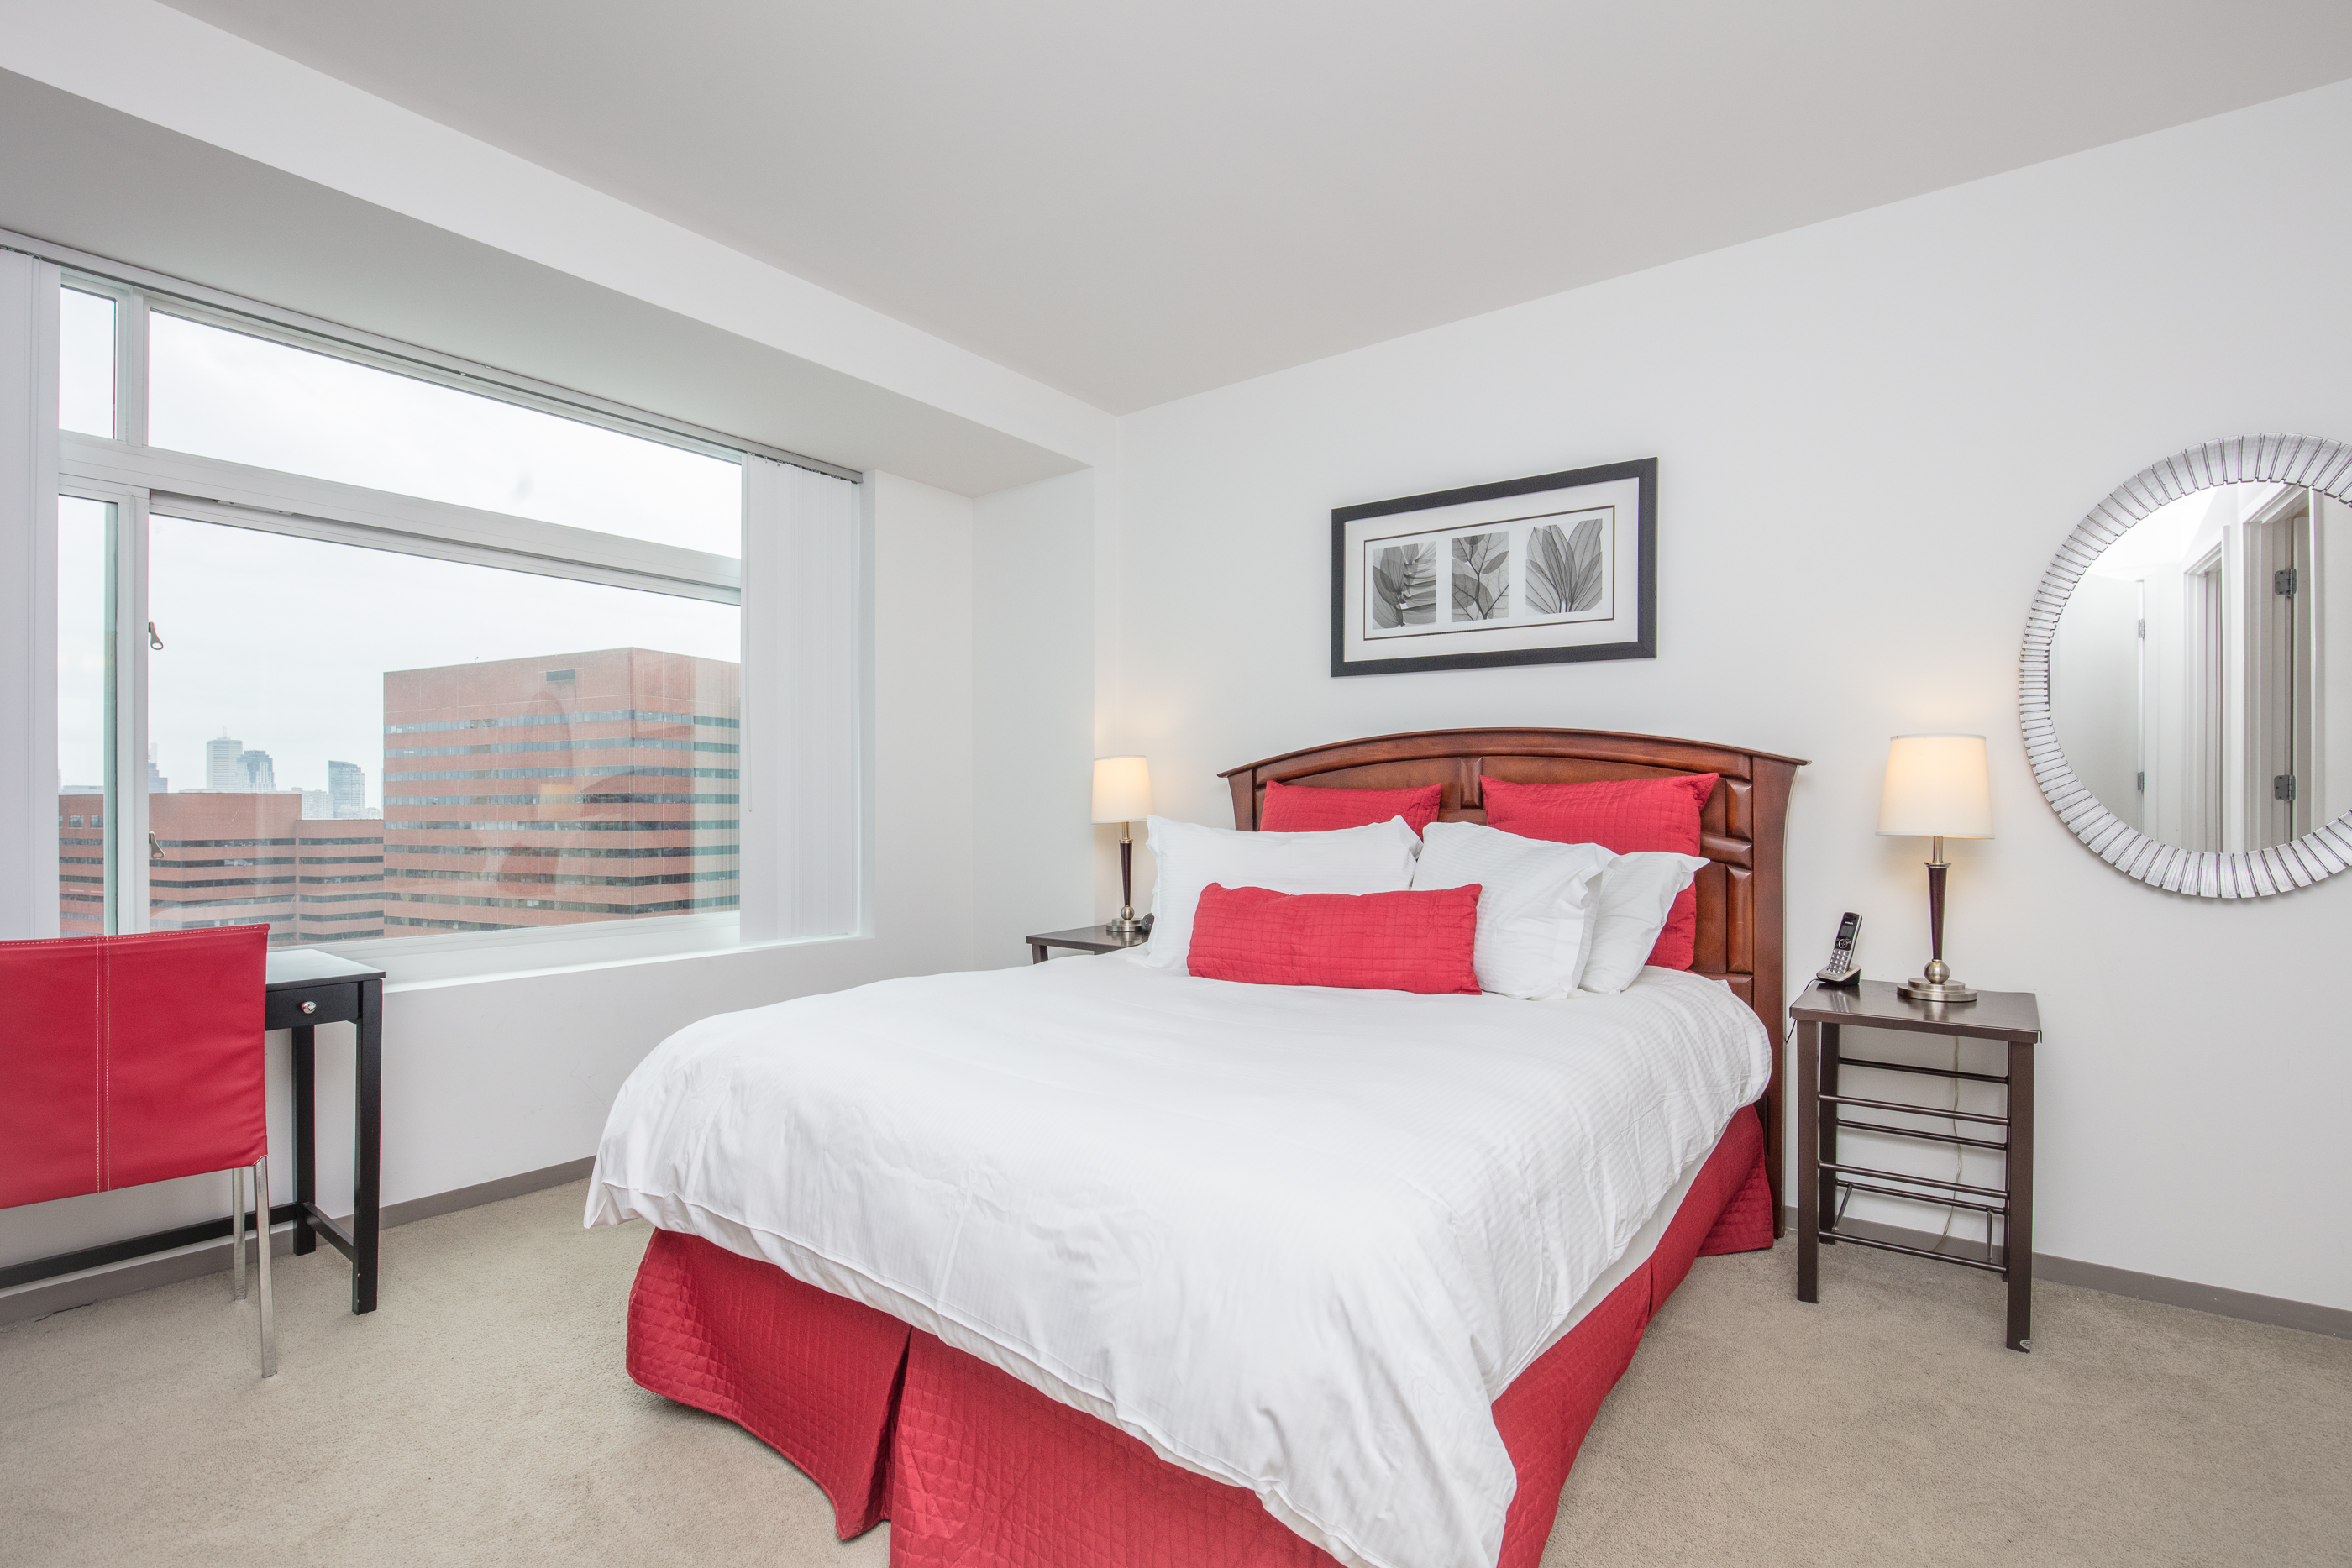 Cambridge furnished 1 bedroom apartment for rent 6870 per month rental id 3372337 for One bedroom apartment cambridge